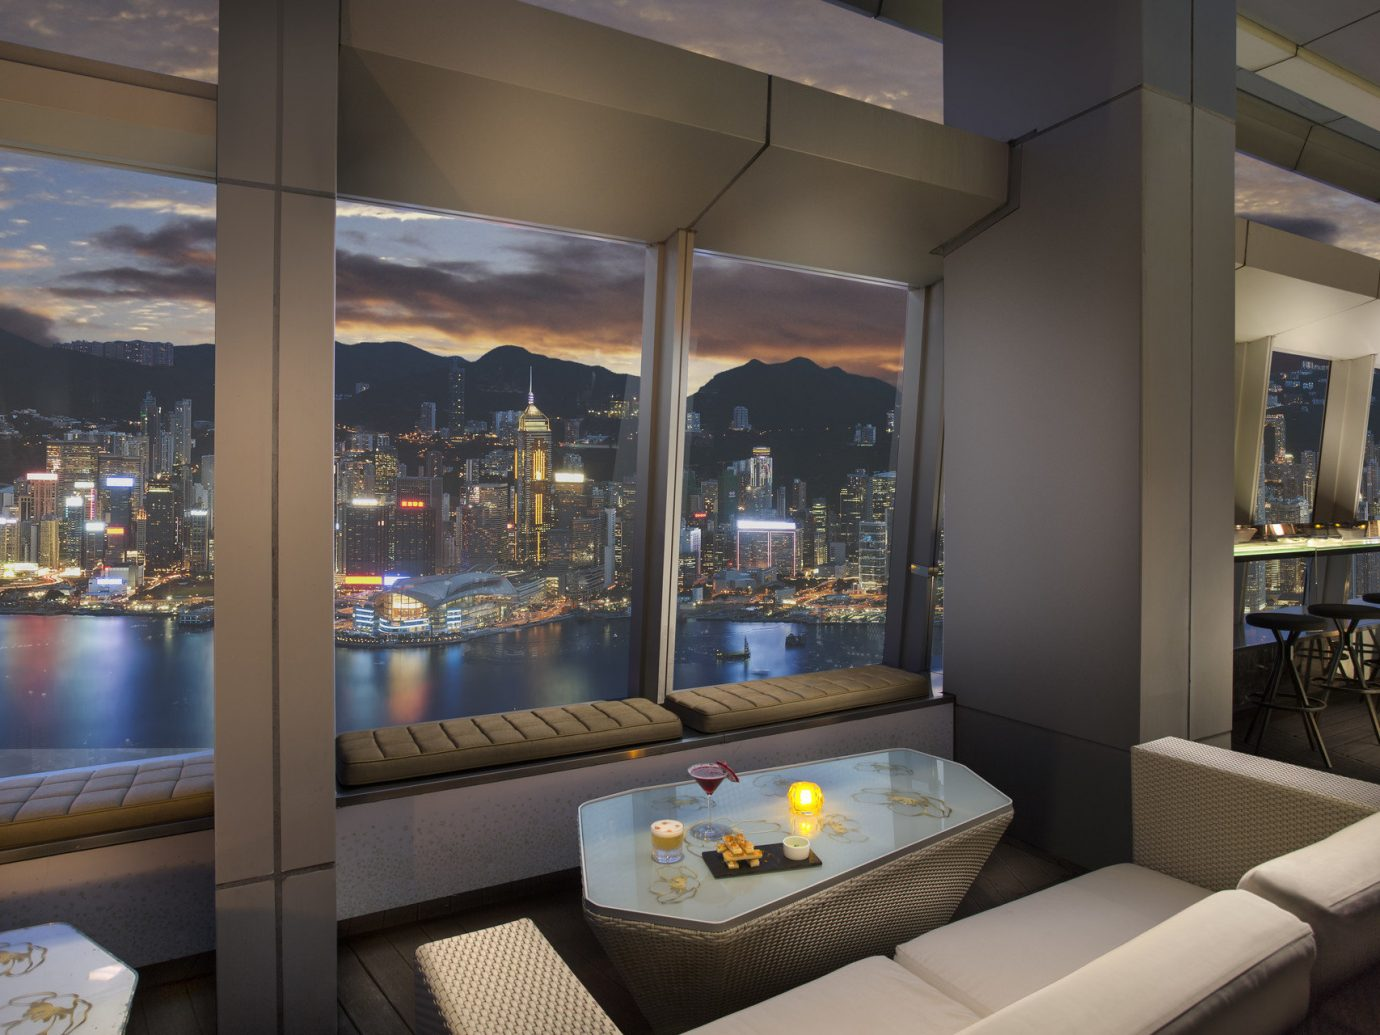 Hong Kong skyline from Ritz-Carlton interior